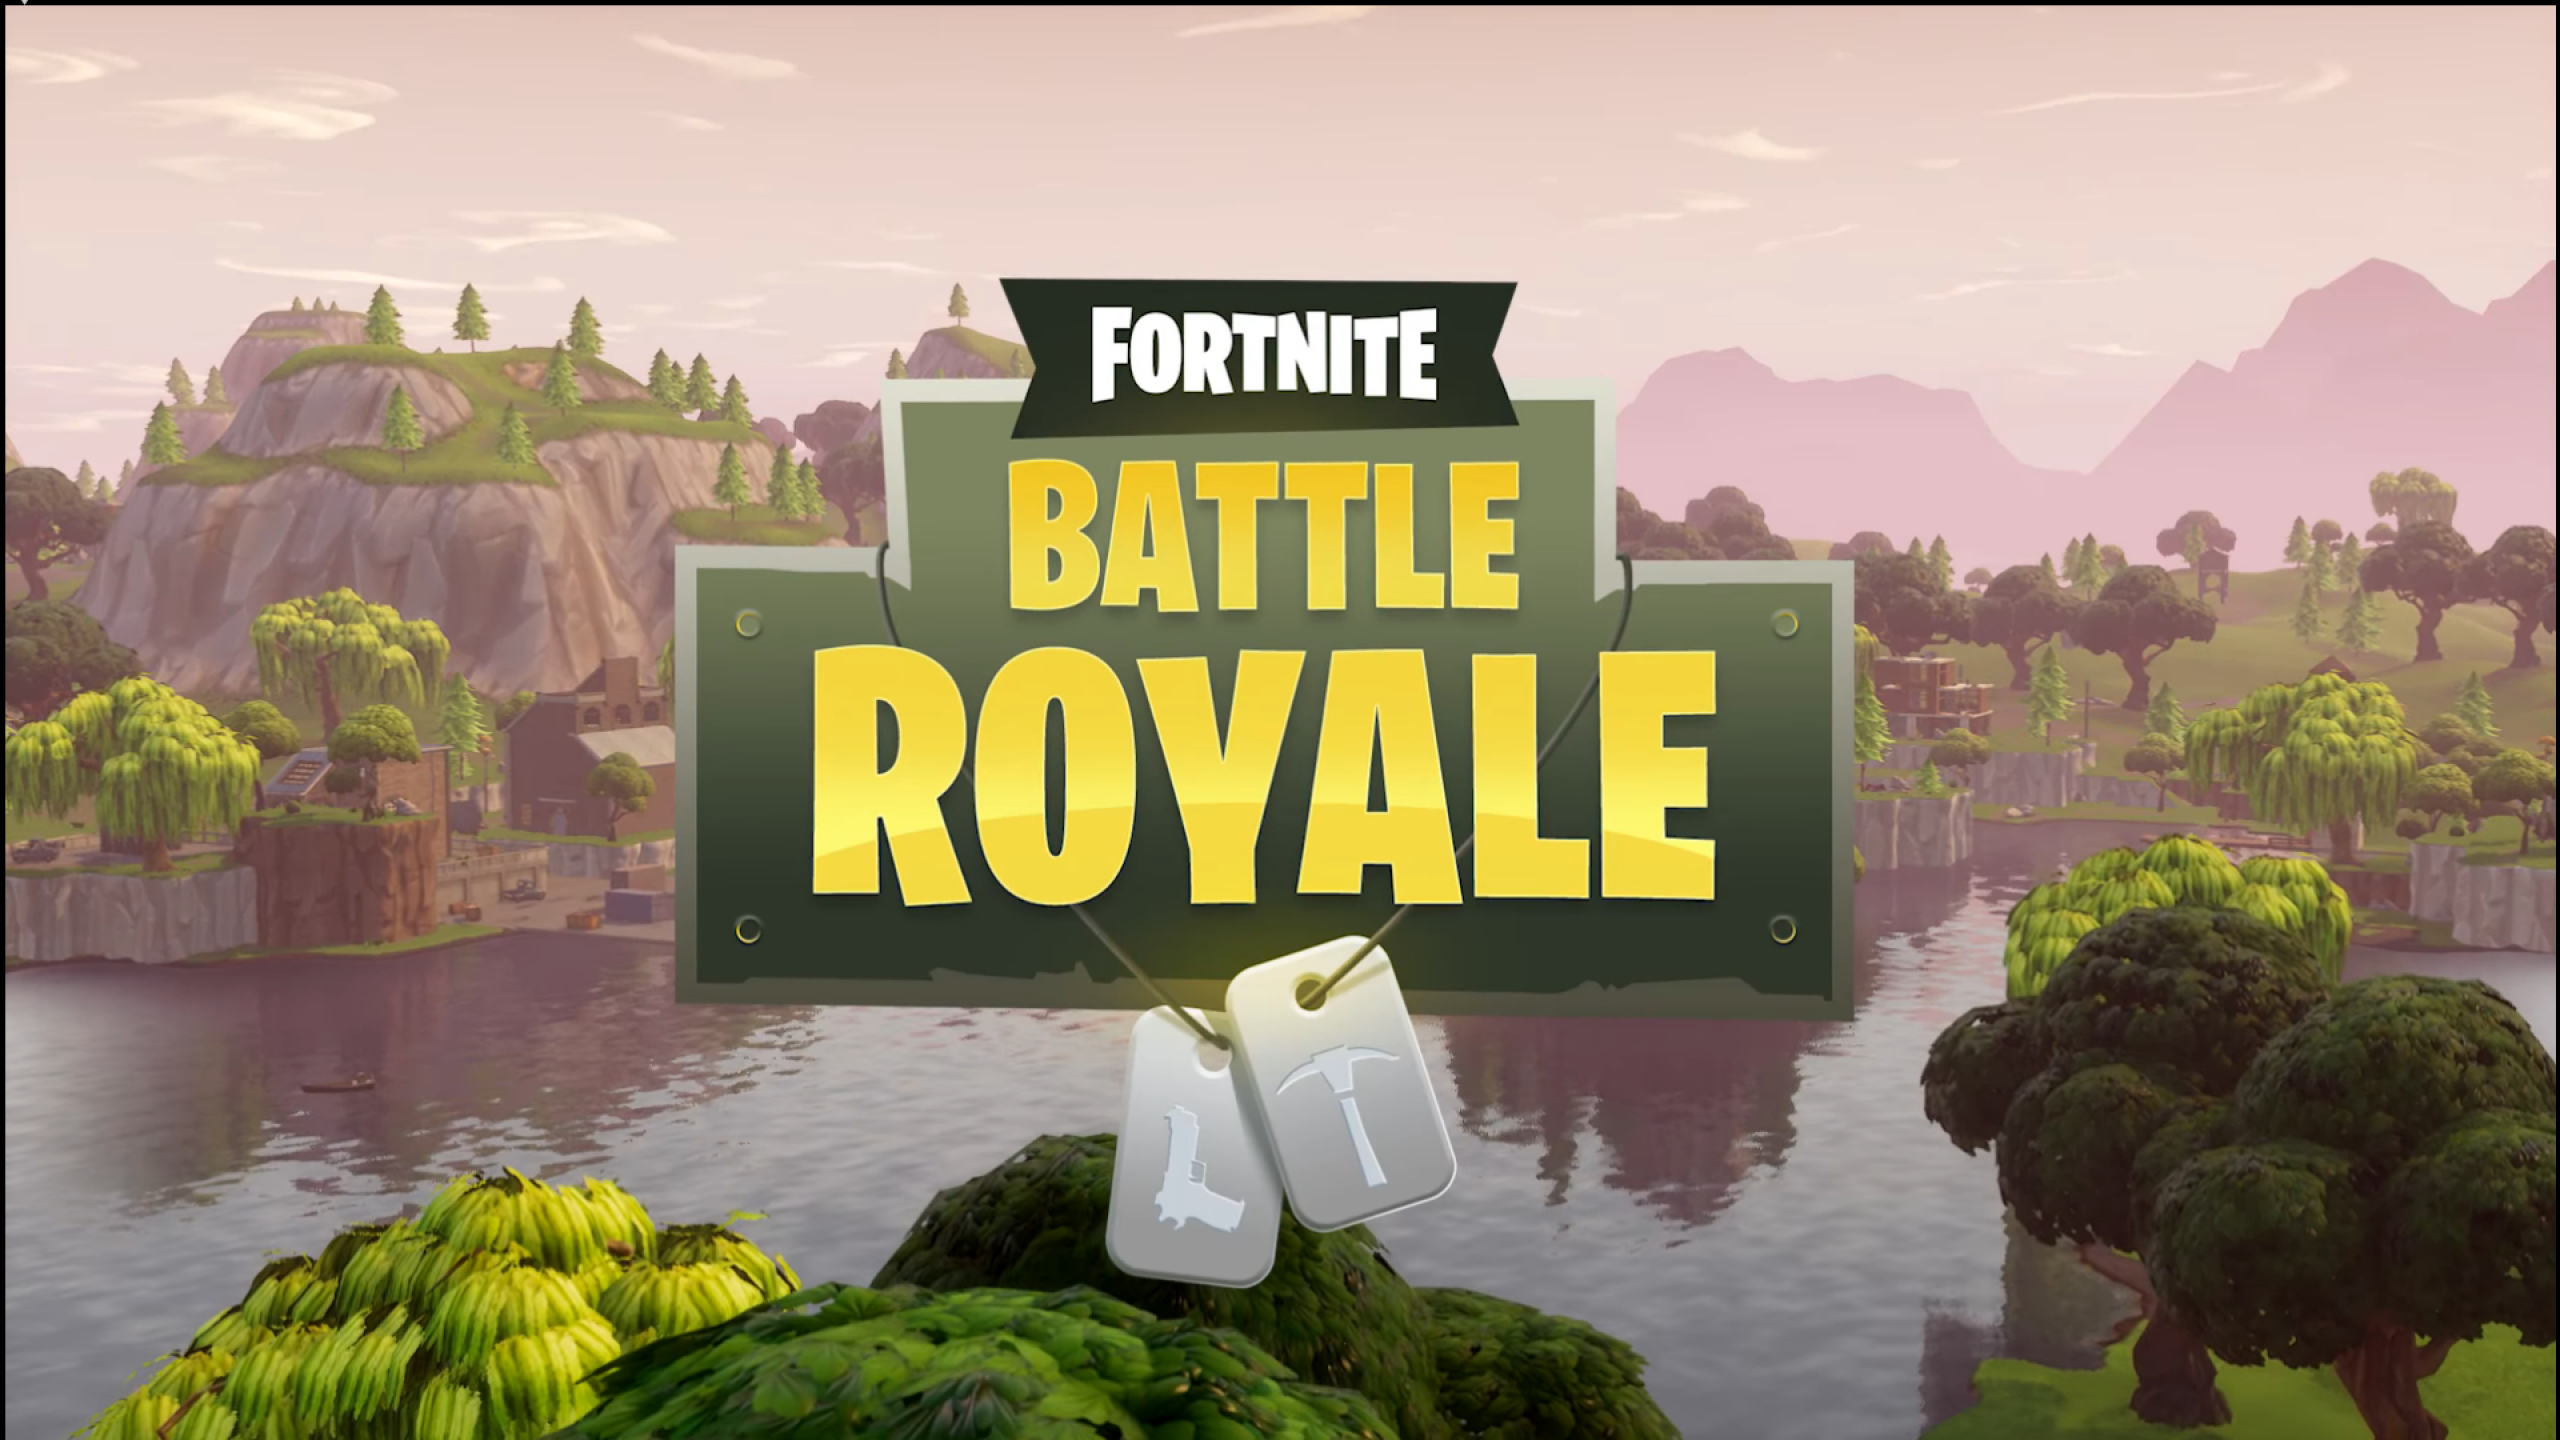 2560x1440 Fortnite Battle Royale Game Poster 1440p